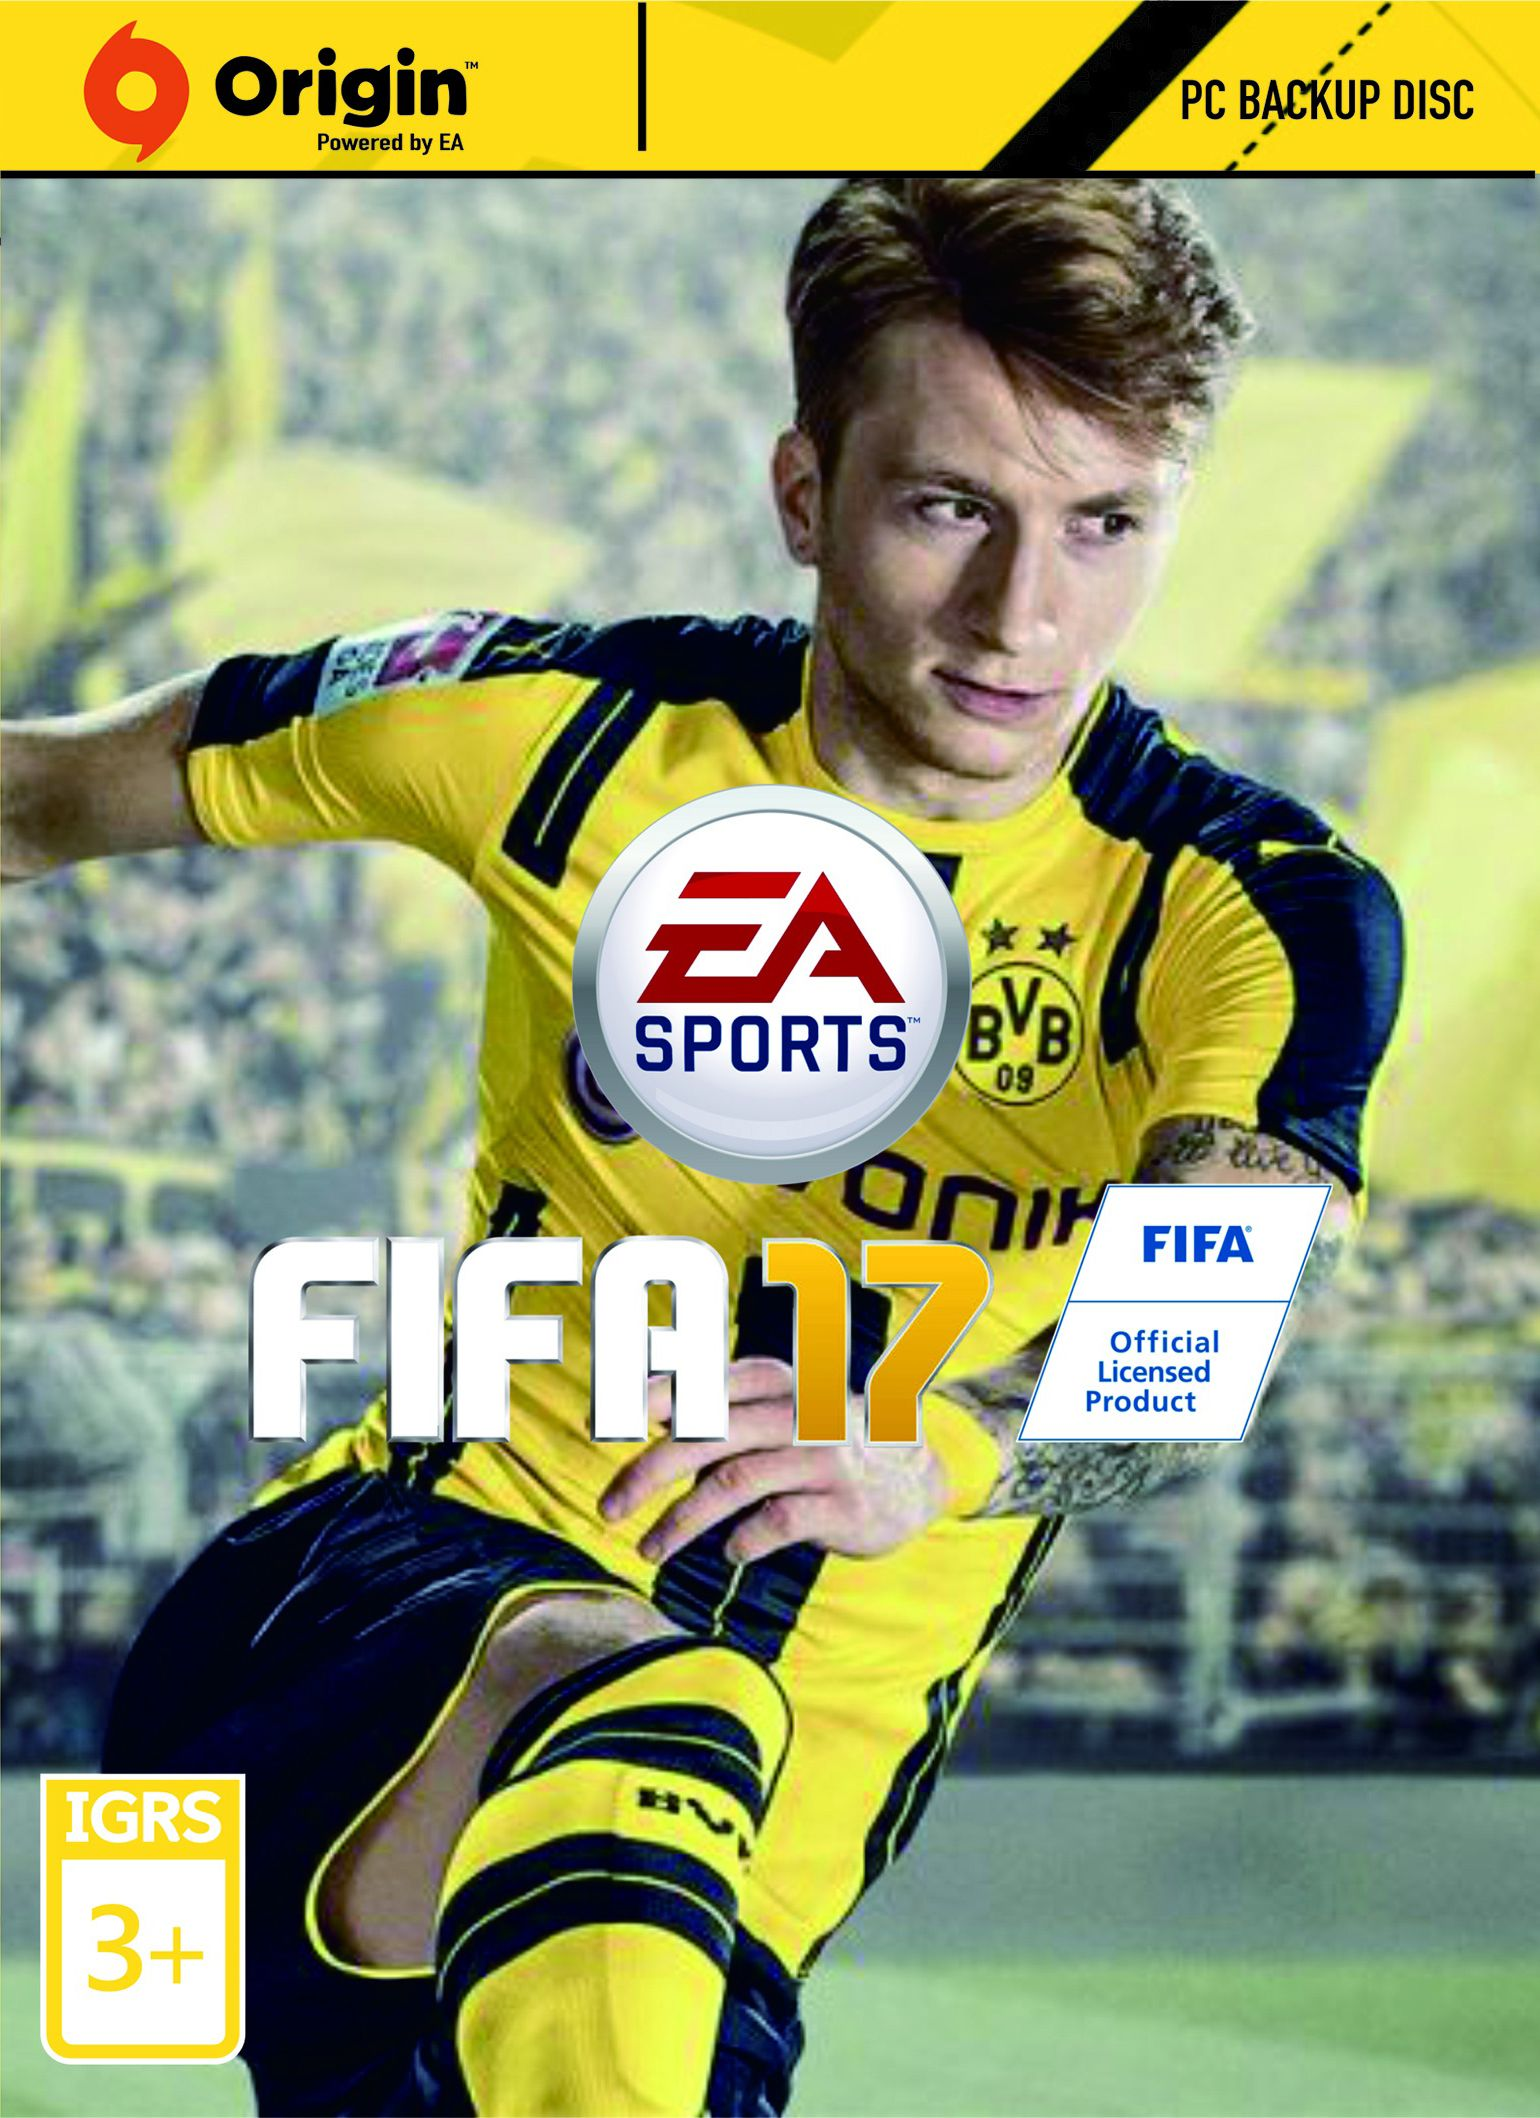 Download Gratis FIFA 17 Full Version